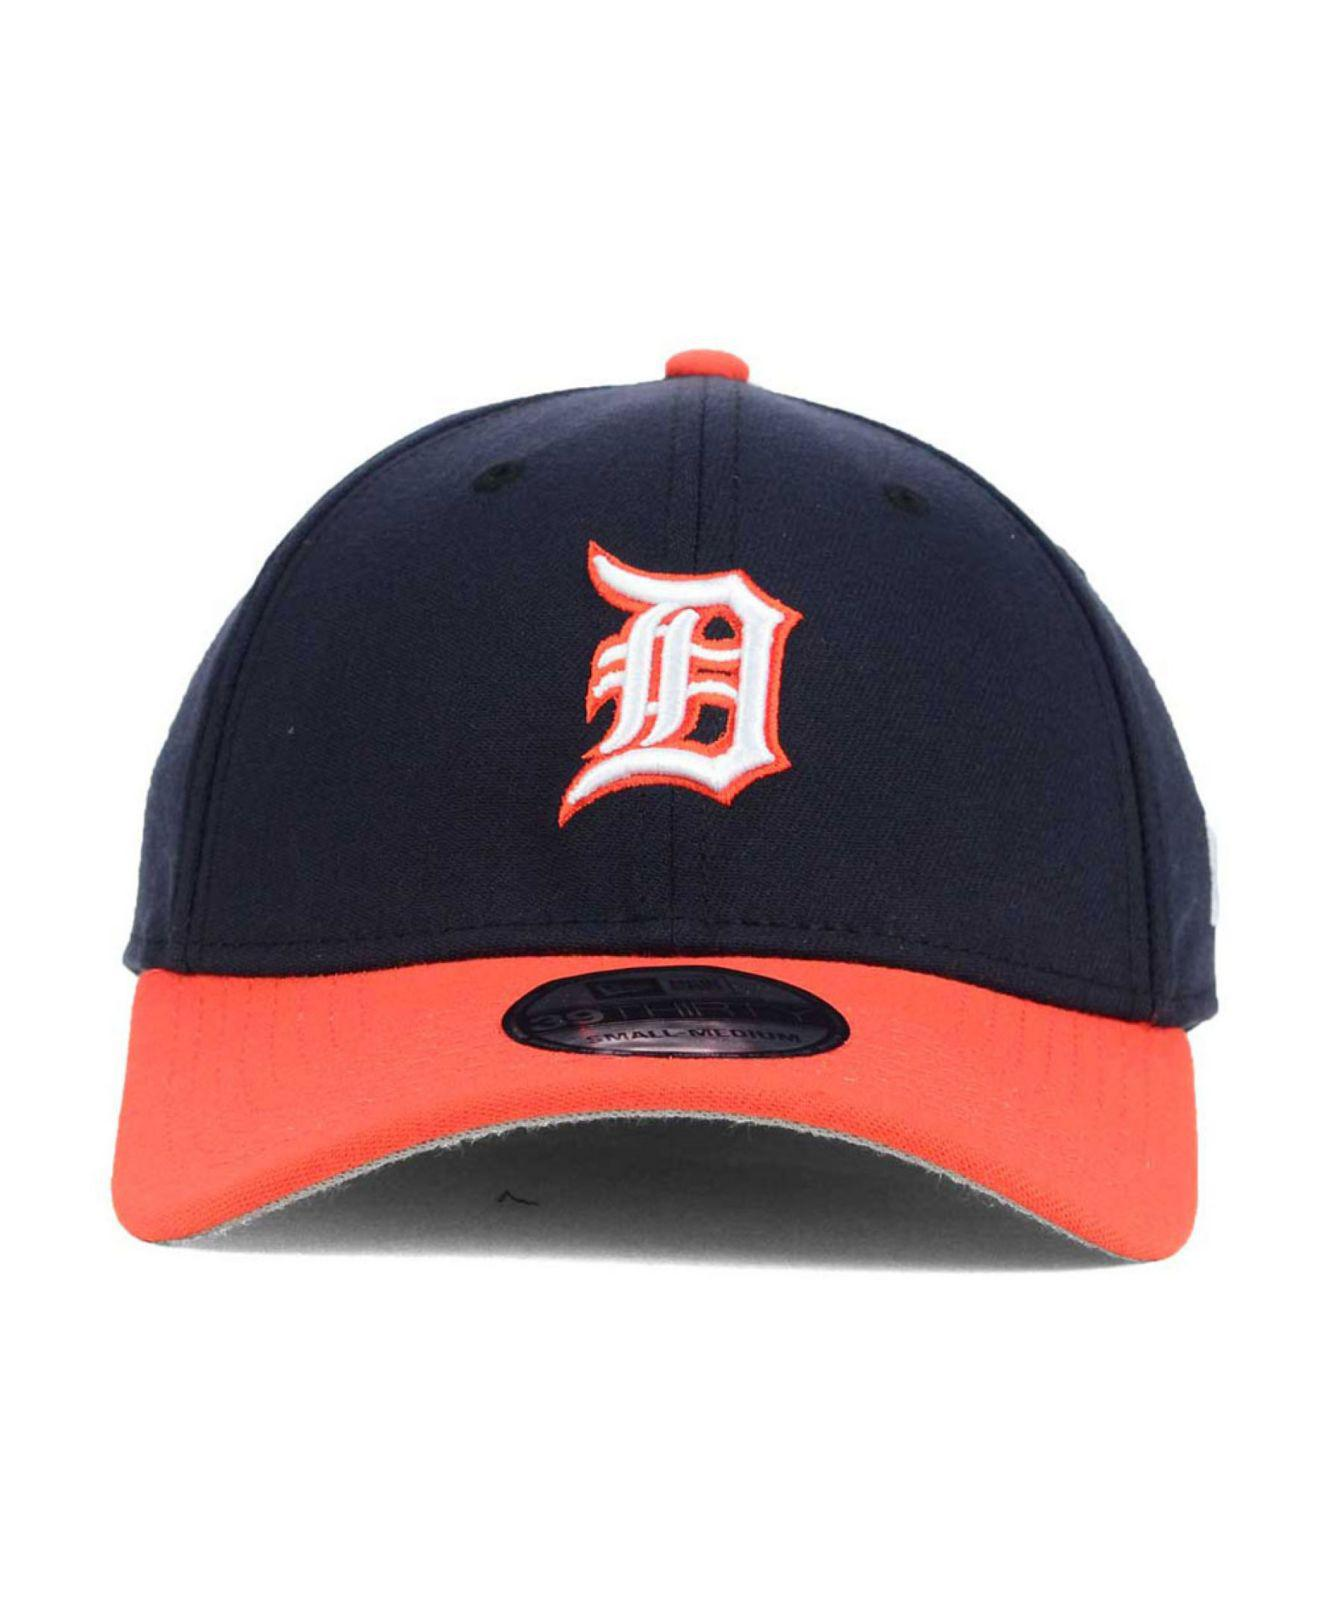 release date 3a3be 96be5 inexpensive lyst ktz detroit tigers core classic 39thirty cap in blue for  men save 31.034482758620683 bf3cc